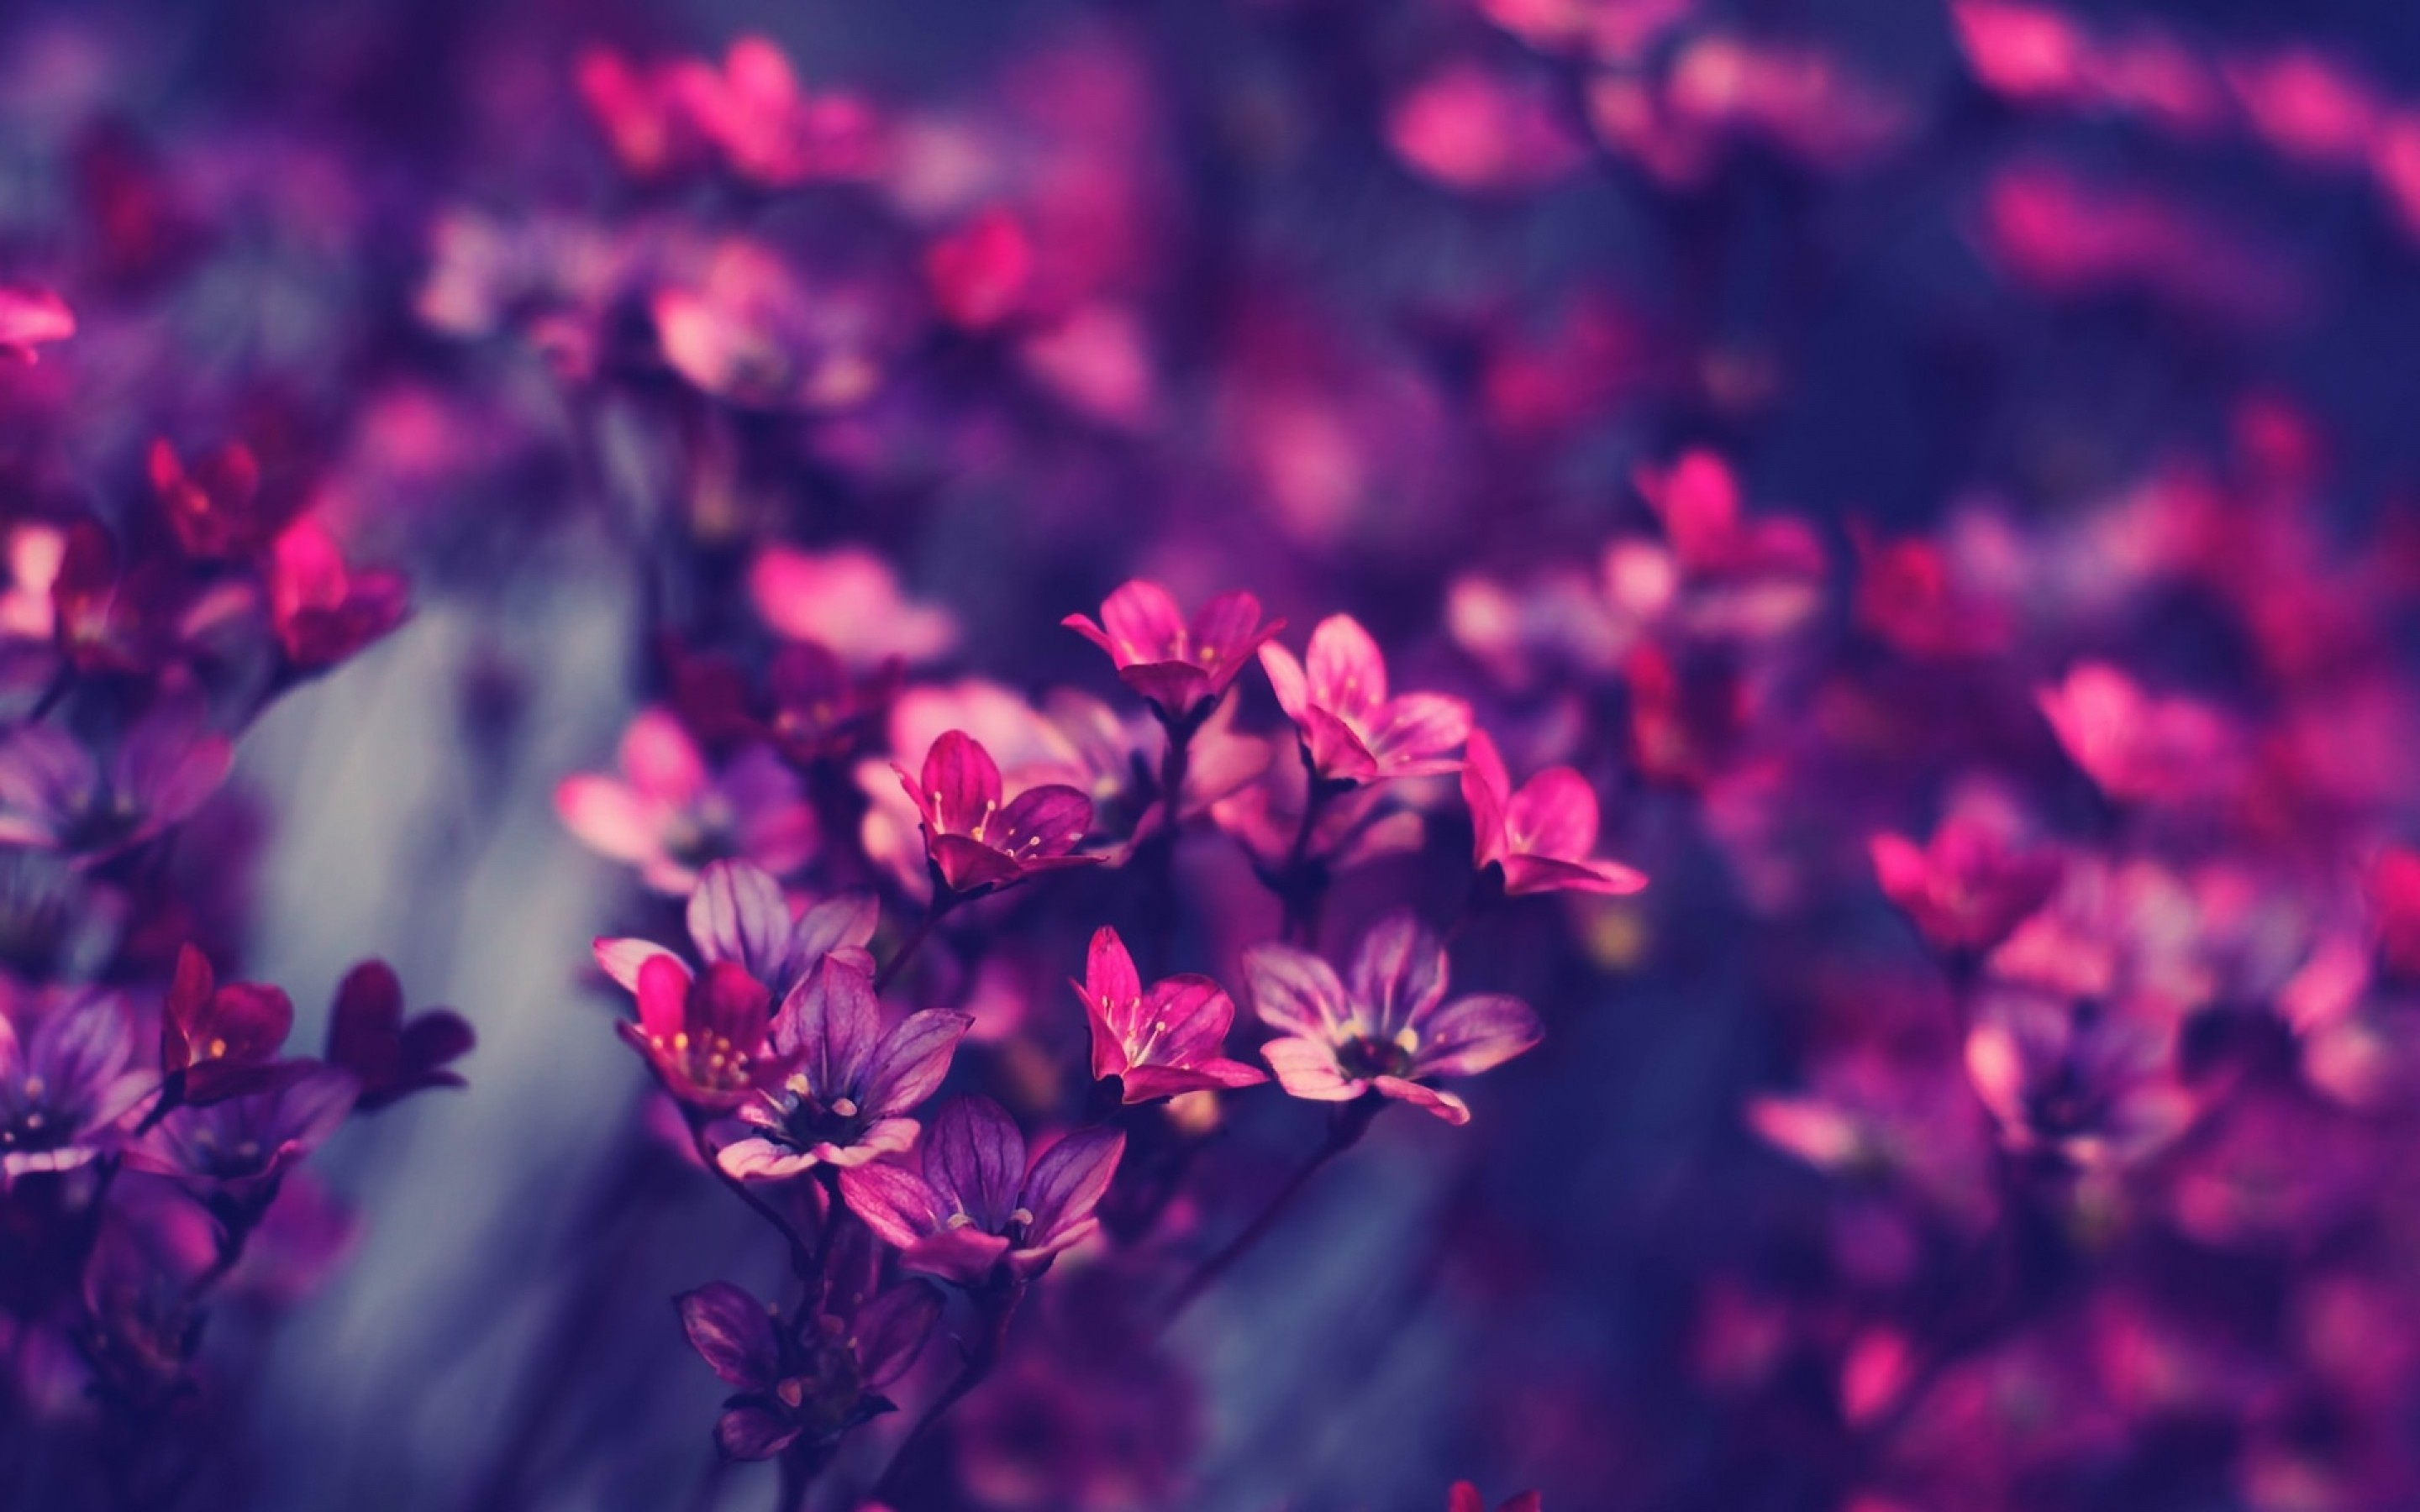 Floral Background Tumblr Download Free Hd Backgrounds For